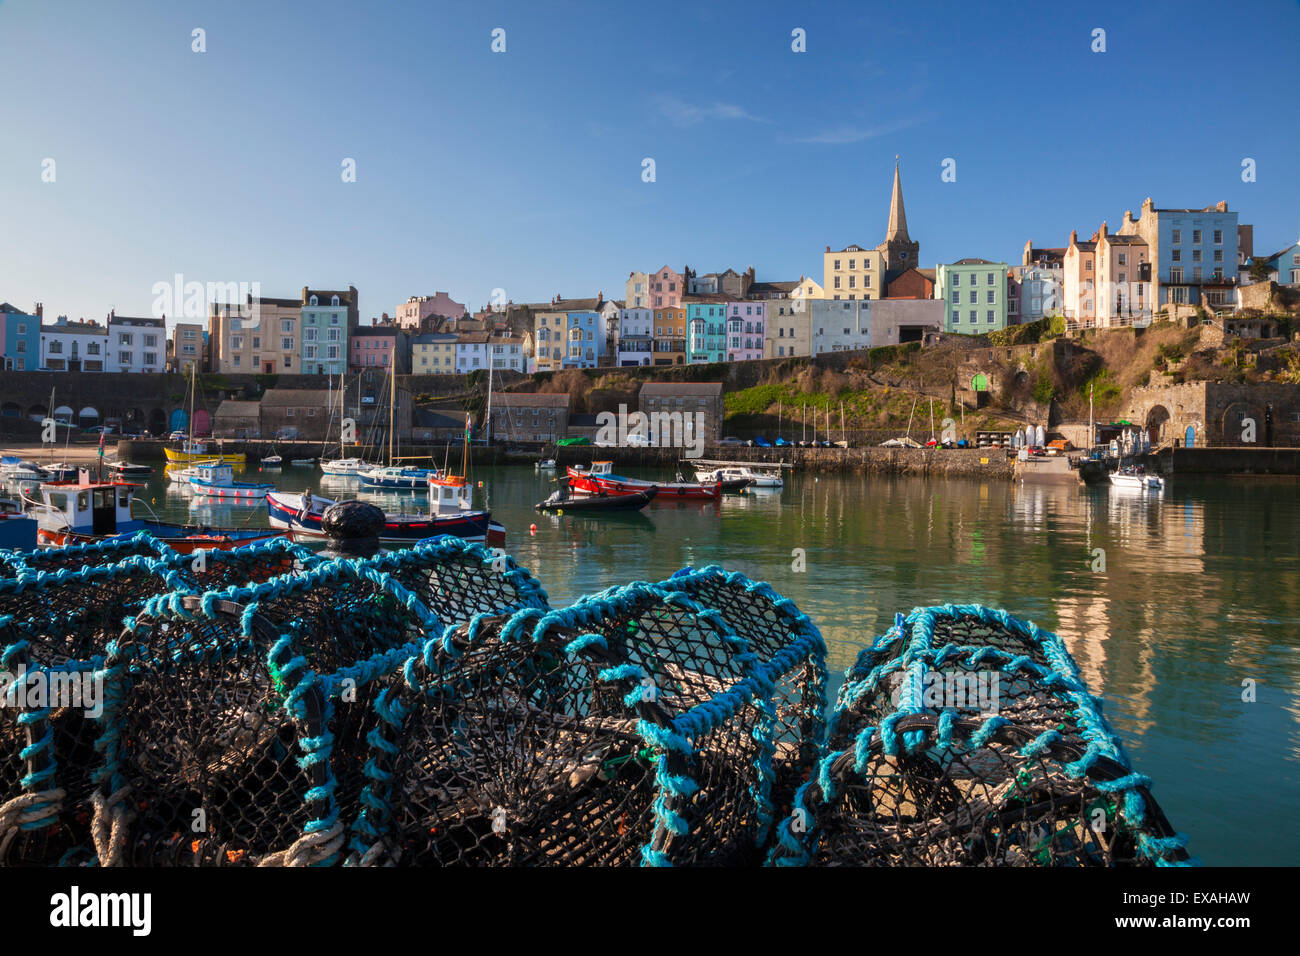 Tenby, West Wales, Pembrokeshire, Wales, United Kingdom, Europe - Stock Image